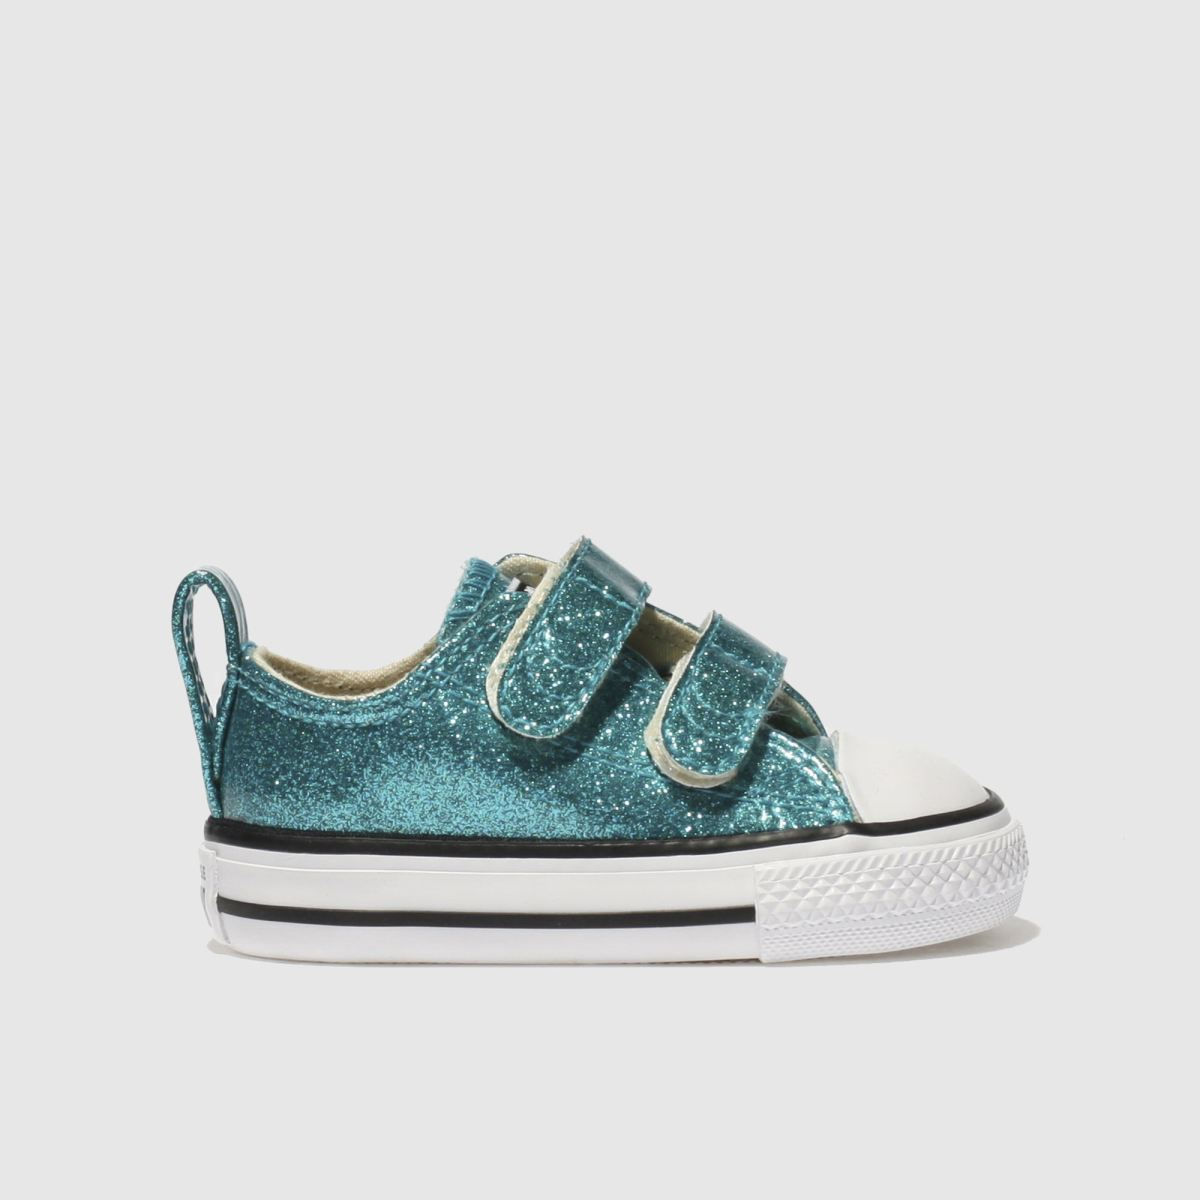 Converse Turquoise All Star Glitter Girls Toddler Toddler